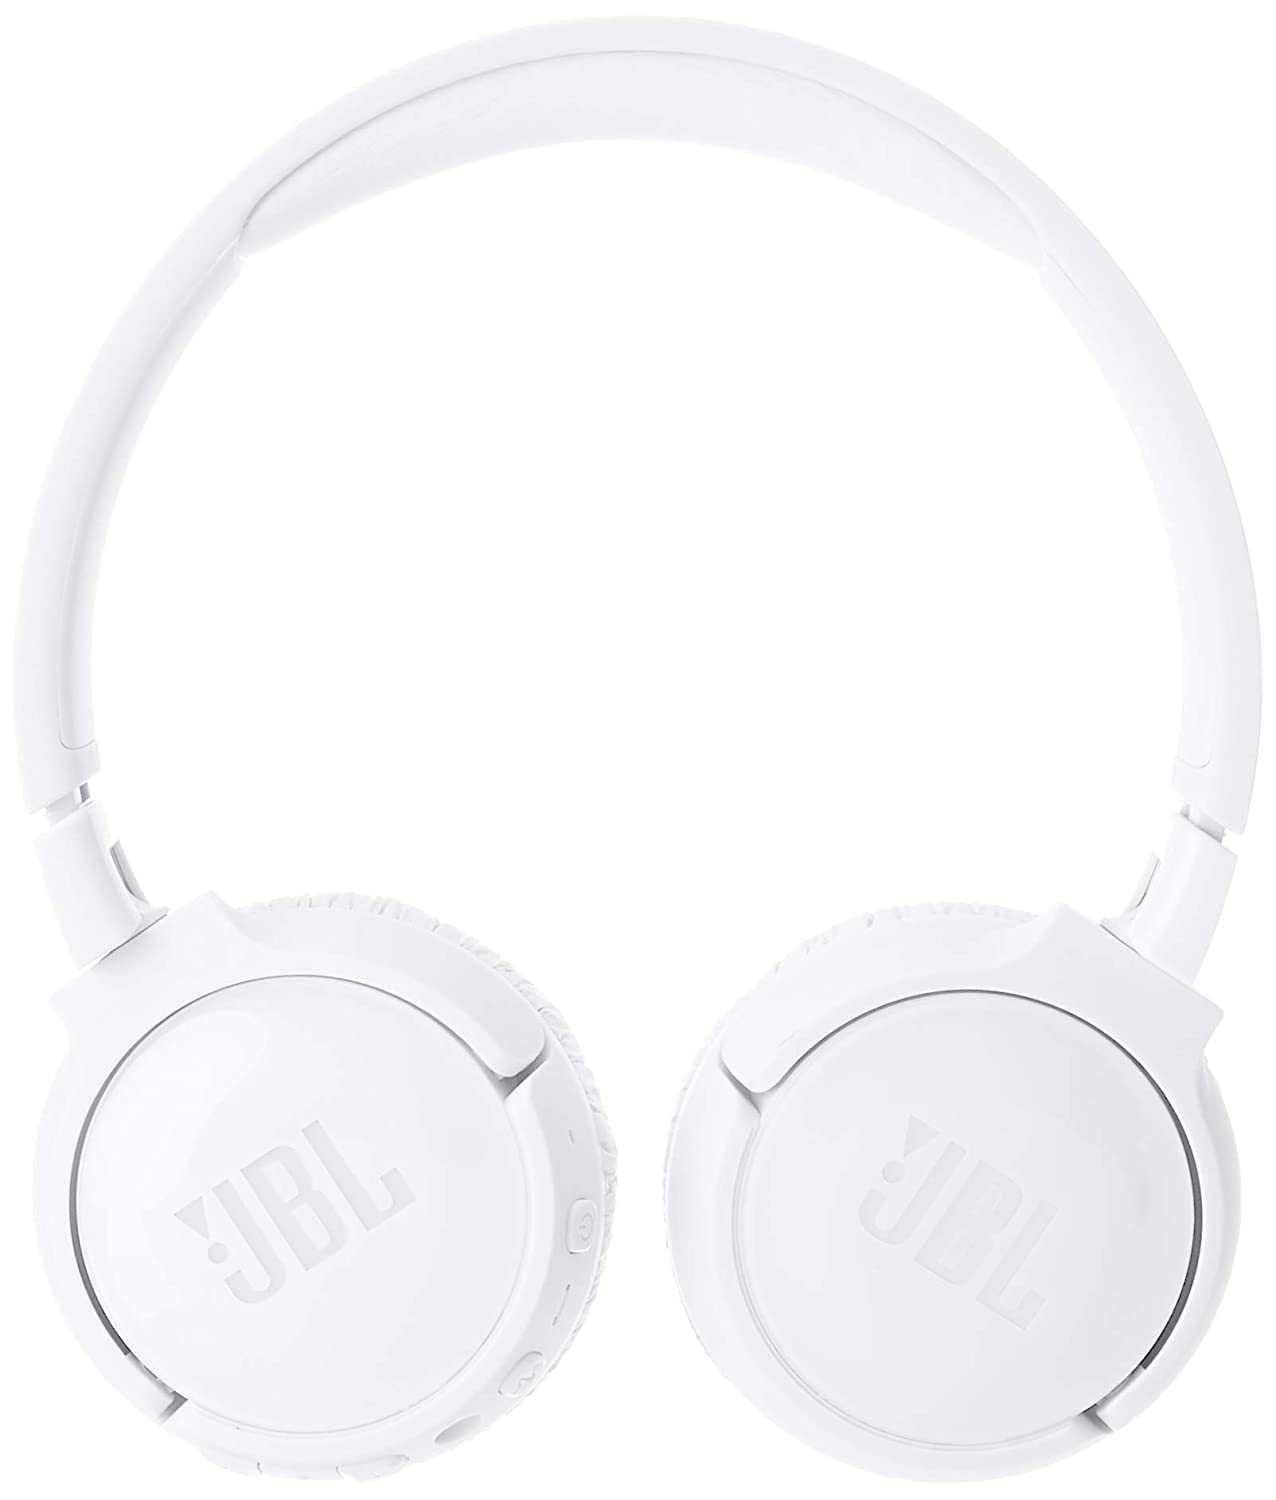 a6404a2be23 Amazon.com: JBL Tune 600 BTNC On-Ear Wireless Bluetooth Noise Canceling  Headphones - White: Electronics